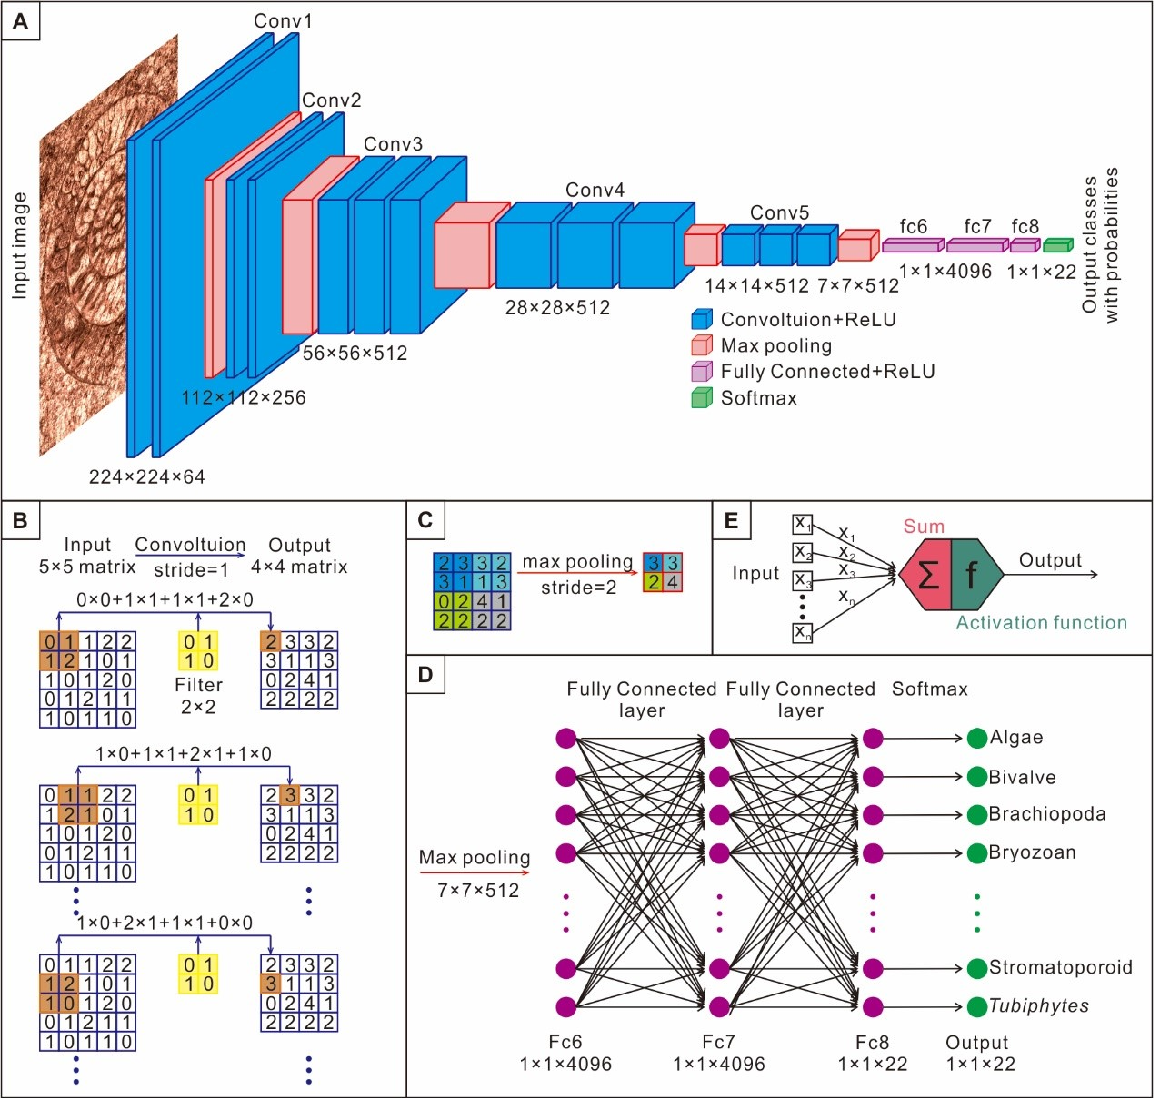 Figure 2 for Automatic identification of fossils and abiotic grains during carbonate microfacies analysis using deep convolutional neural networks